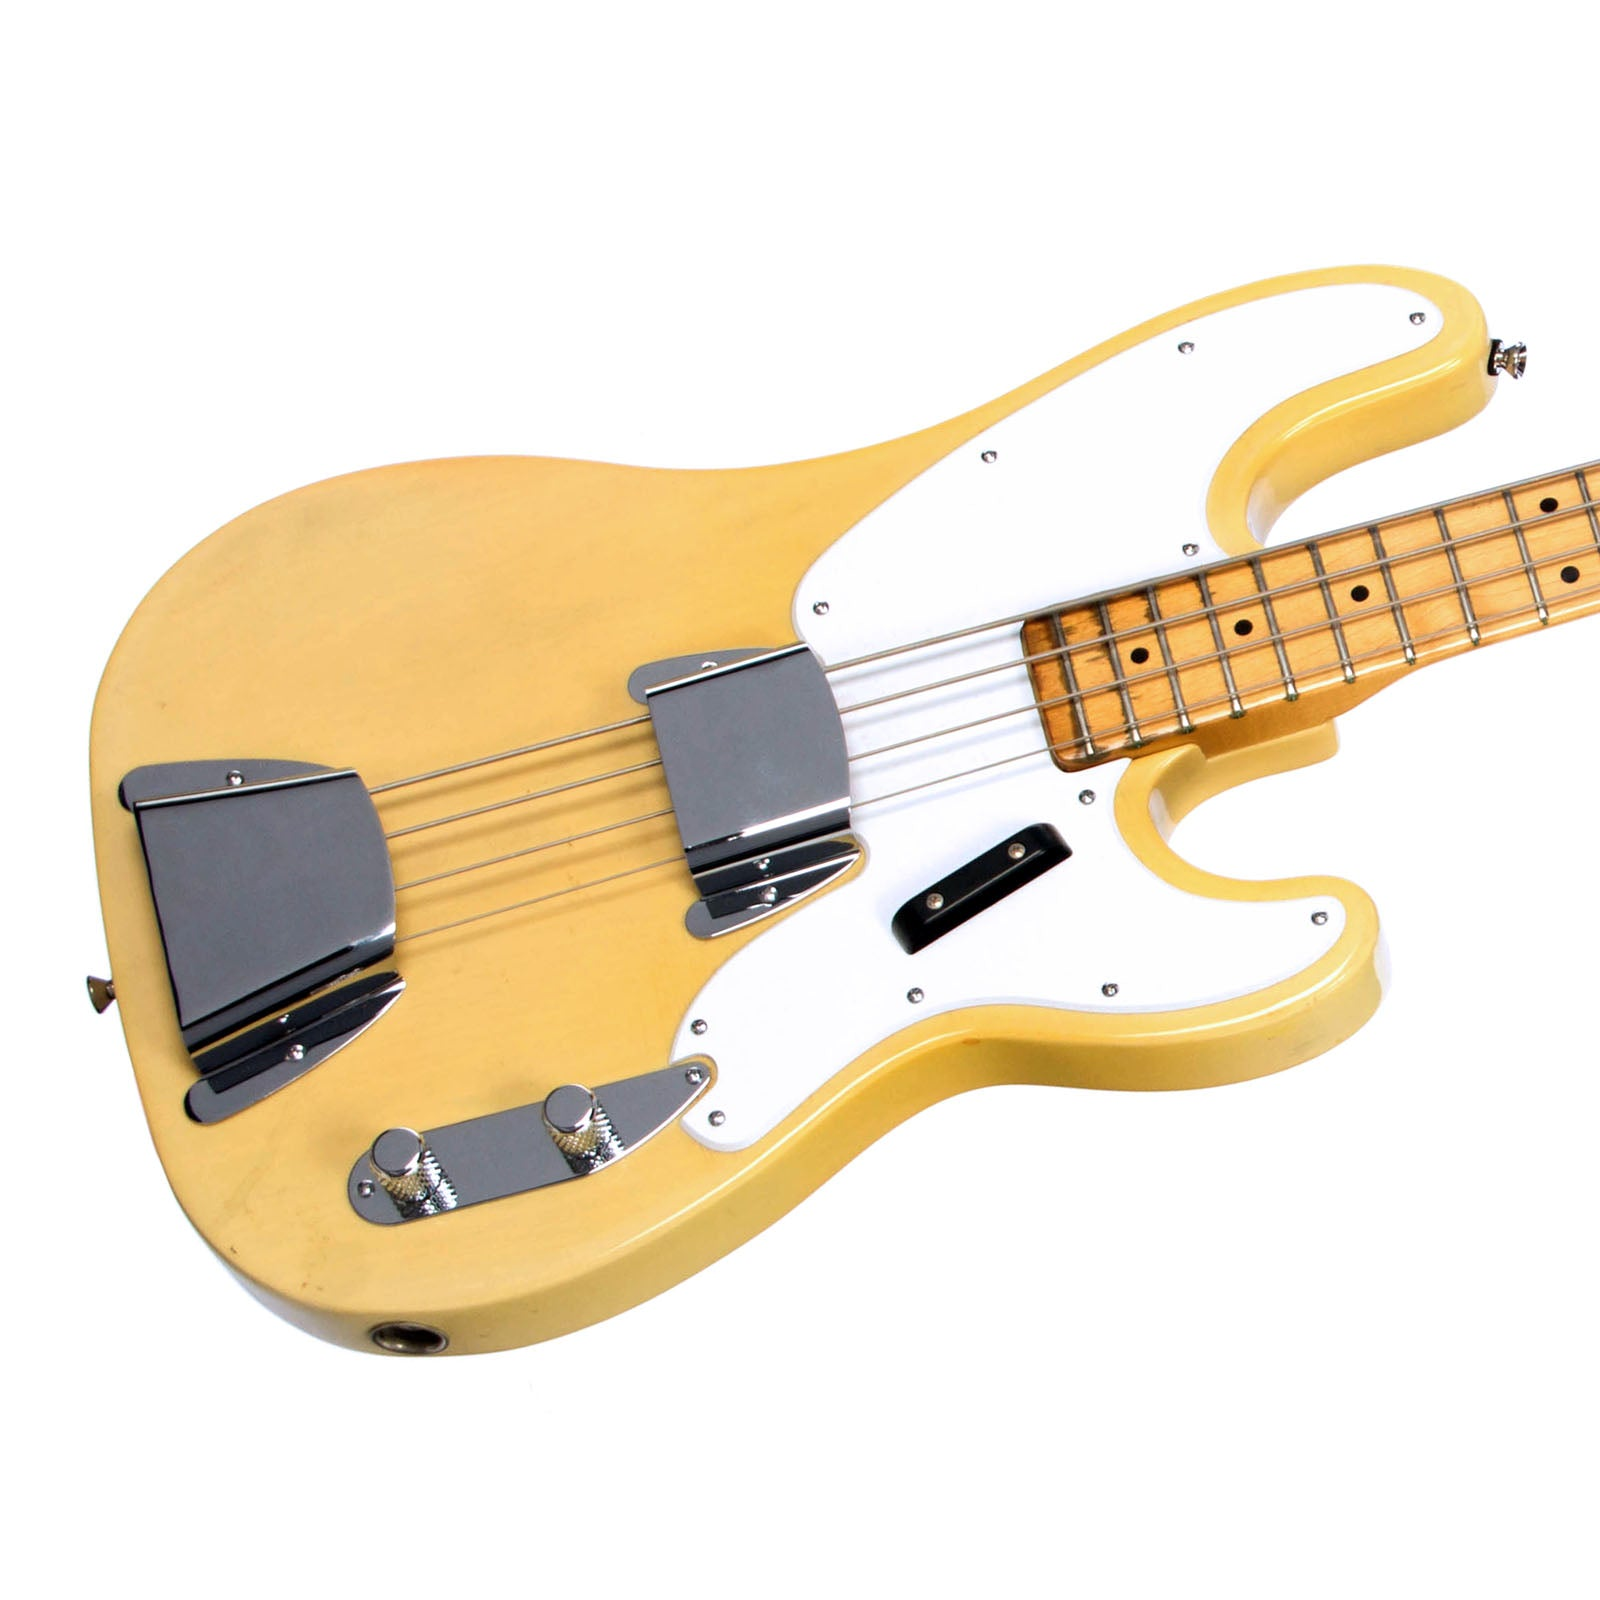 Fender Telecaster Bass Wiring Picturesque Blend Diagram Original Vintage Used Electric Guitar Blonde Nice 1600x1600